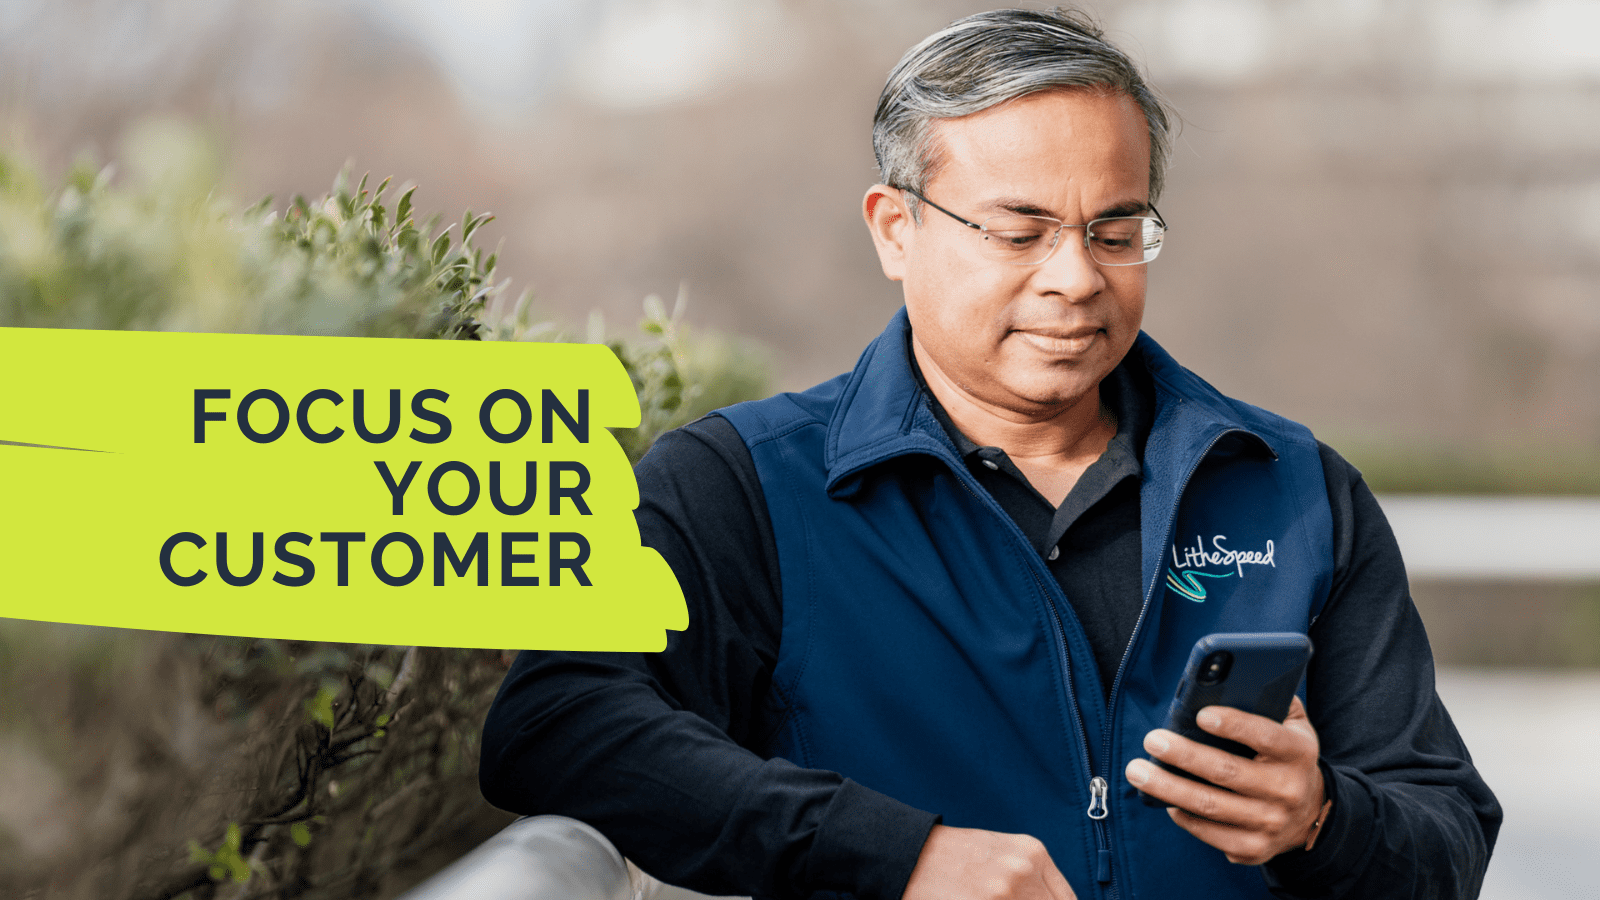 How to focus on your Customer